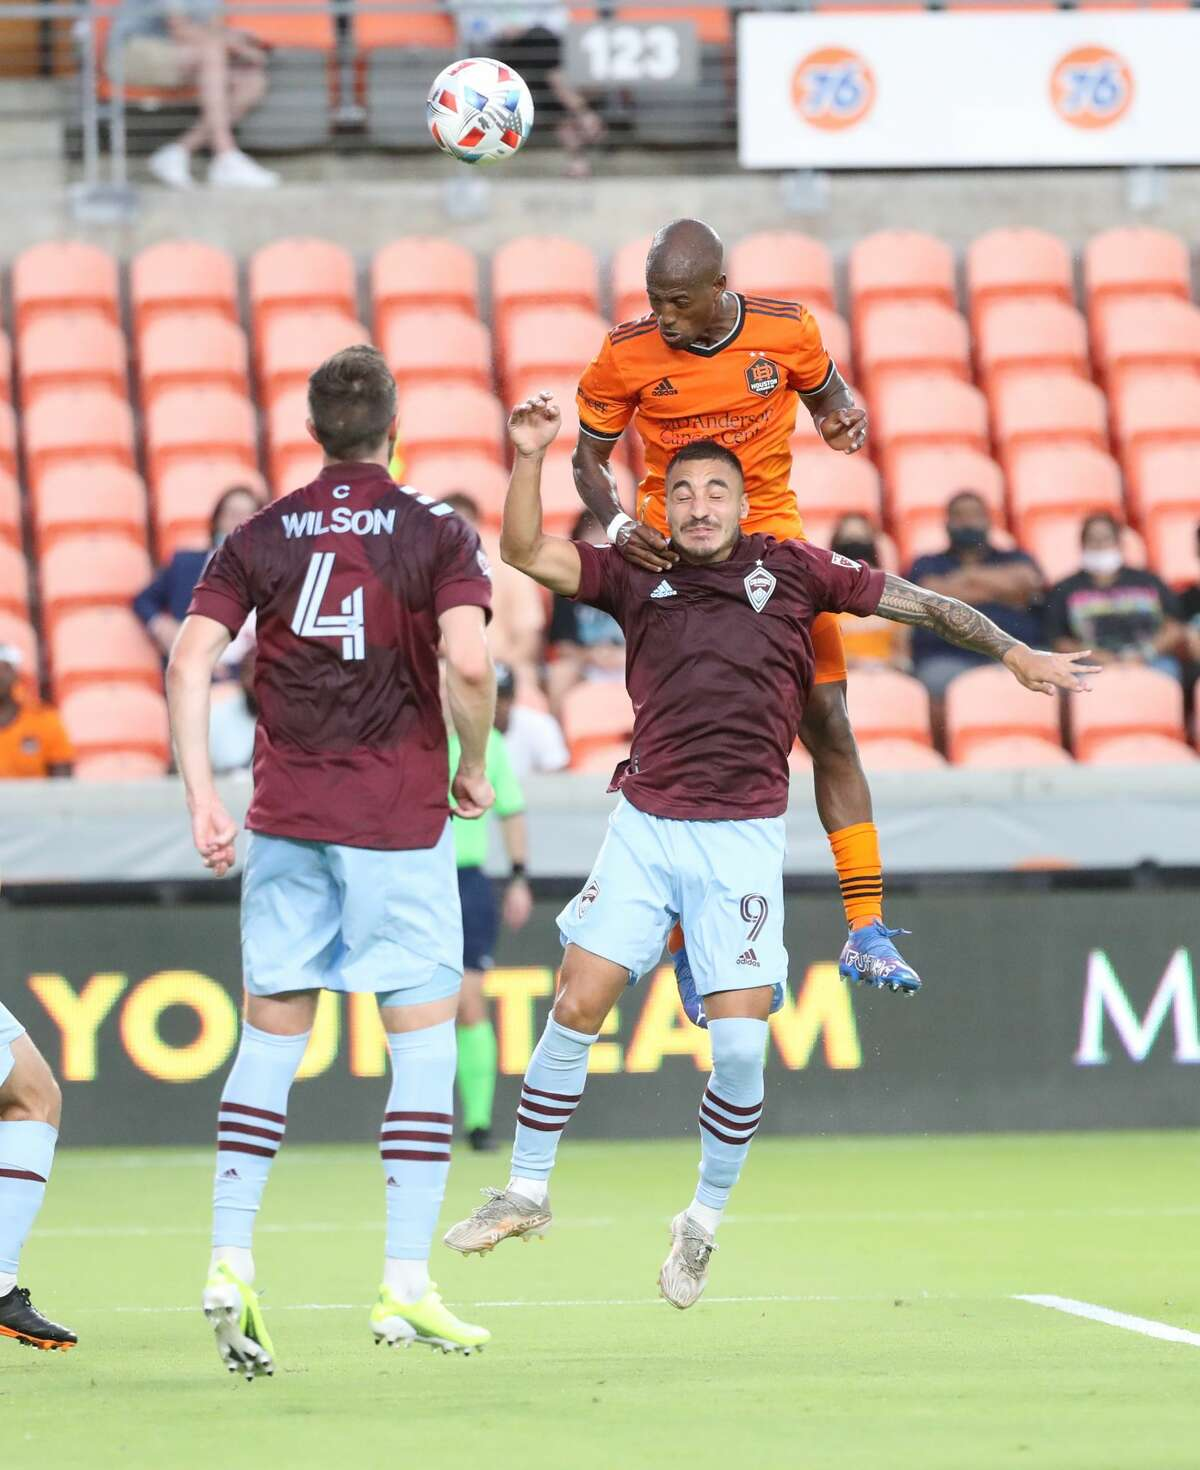 Colorado Rapids forward Andre Shinyashiki (9) and Houston Dynamo midfielder Fafa Picault (10) go up for th ball during the first half of an MLS soccer game at BBVA Stadium, Saturday, August 14, 2021, in Houston.